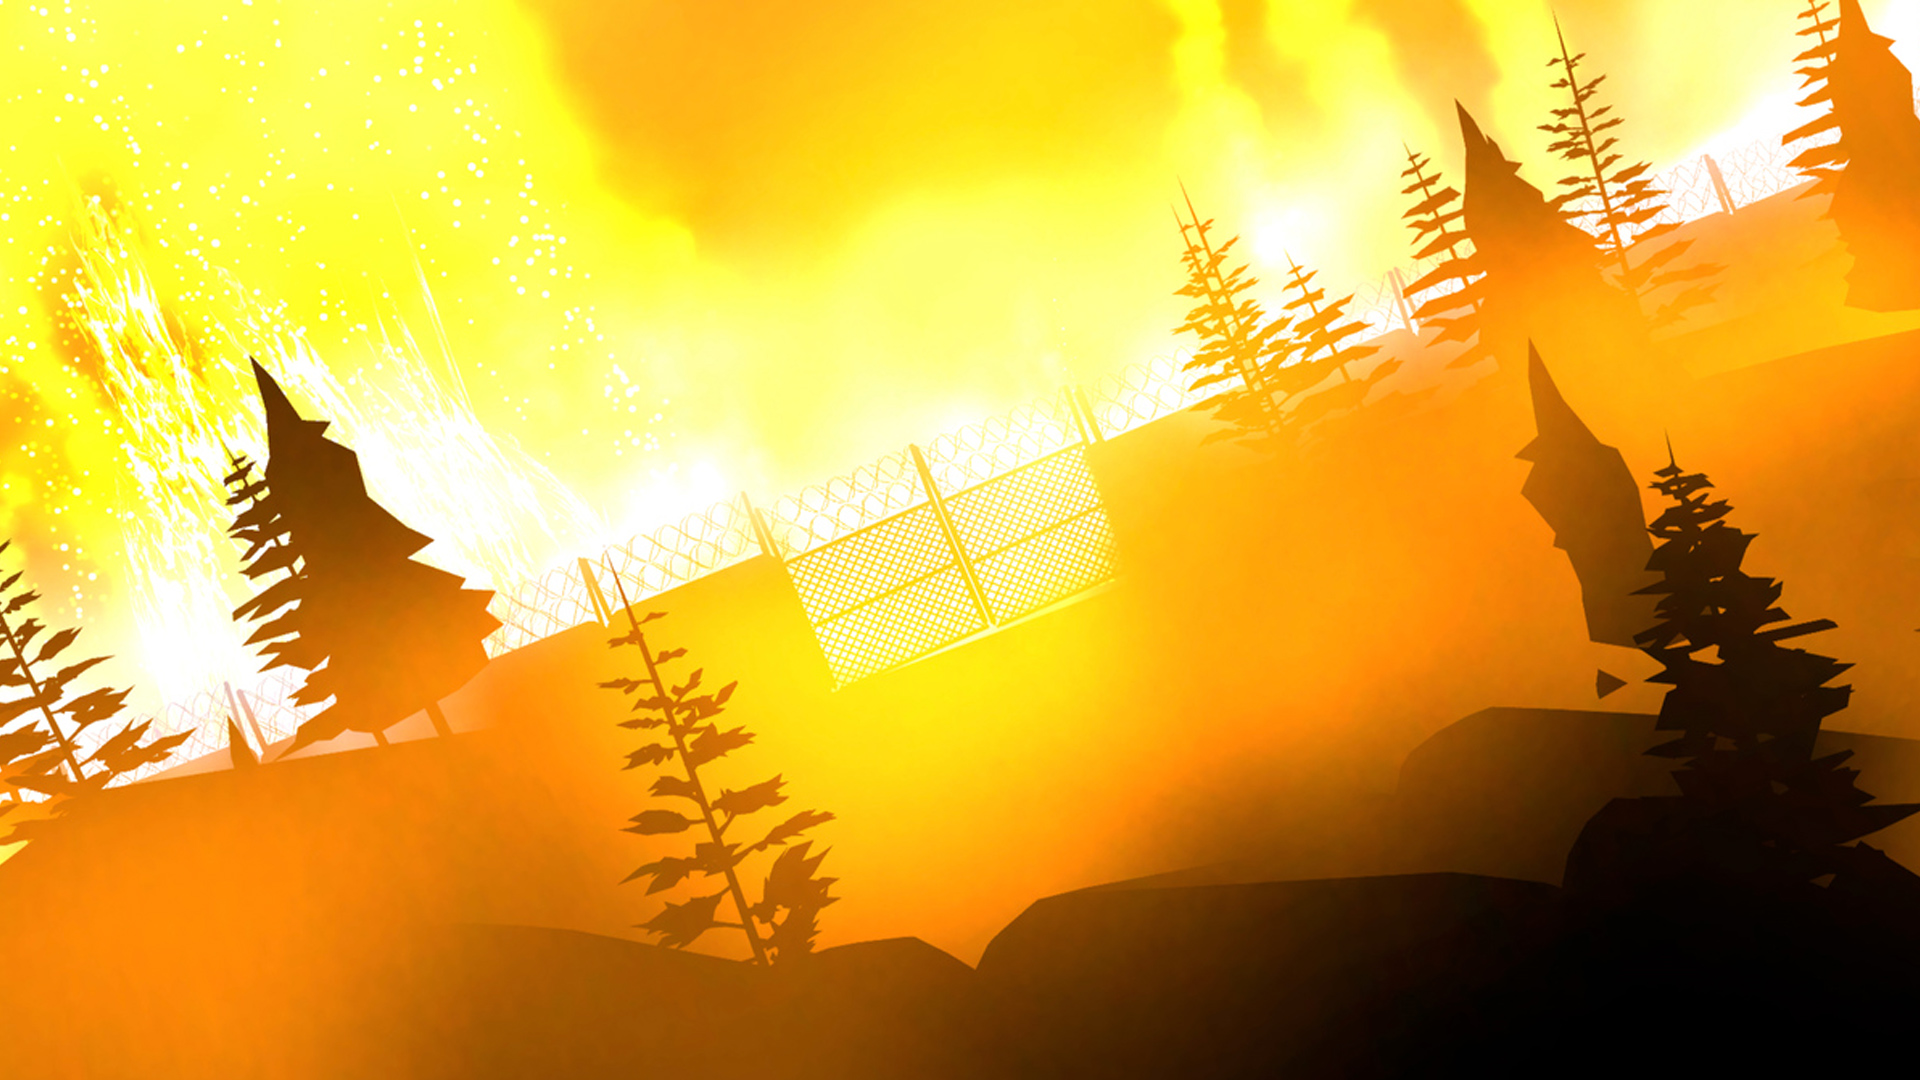 There's a Prison on Fire in the Forest